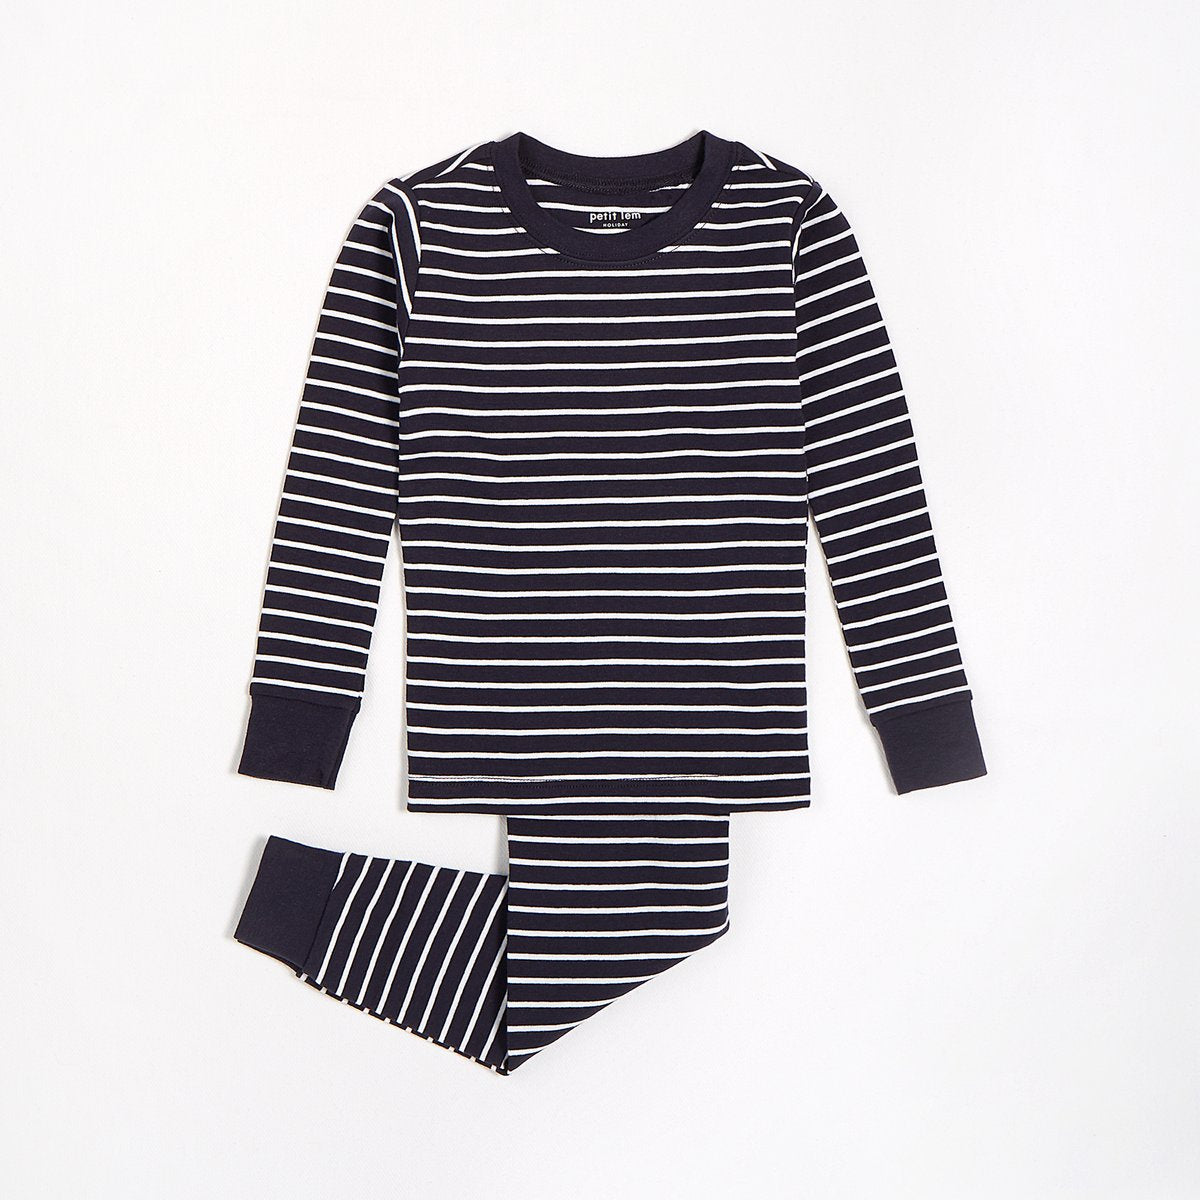 Navy & Grey Striped Pyjama Set - Lullaby's Boutique